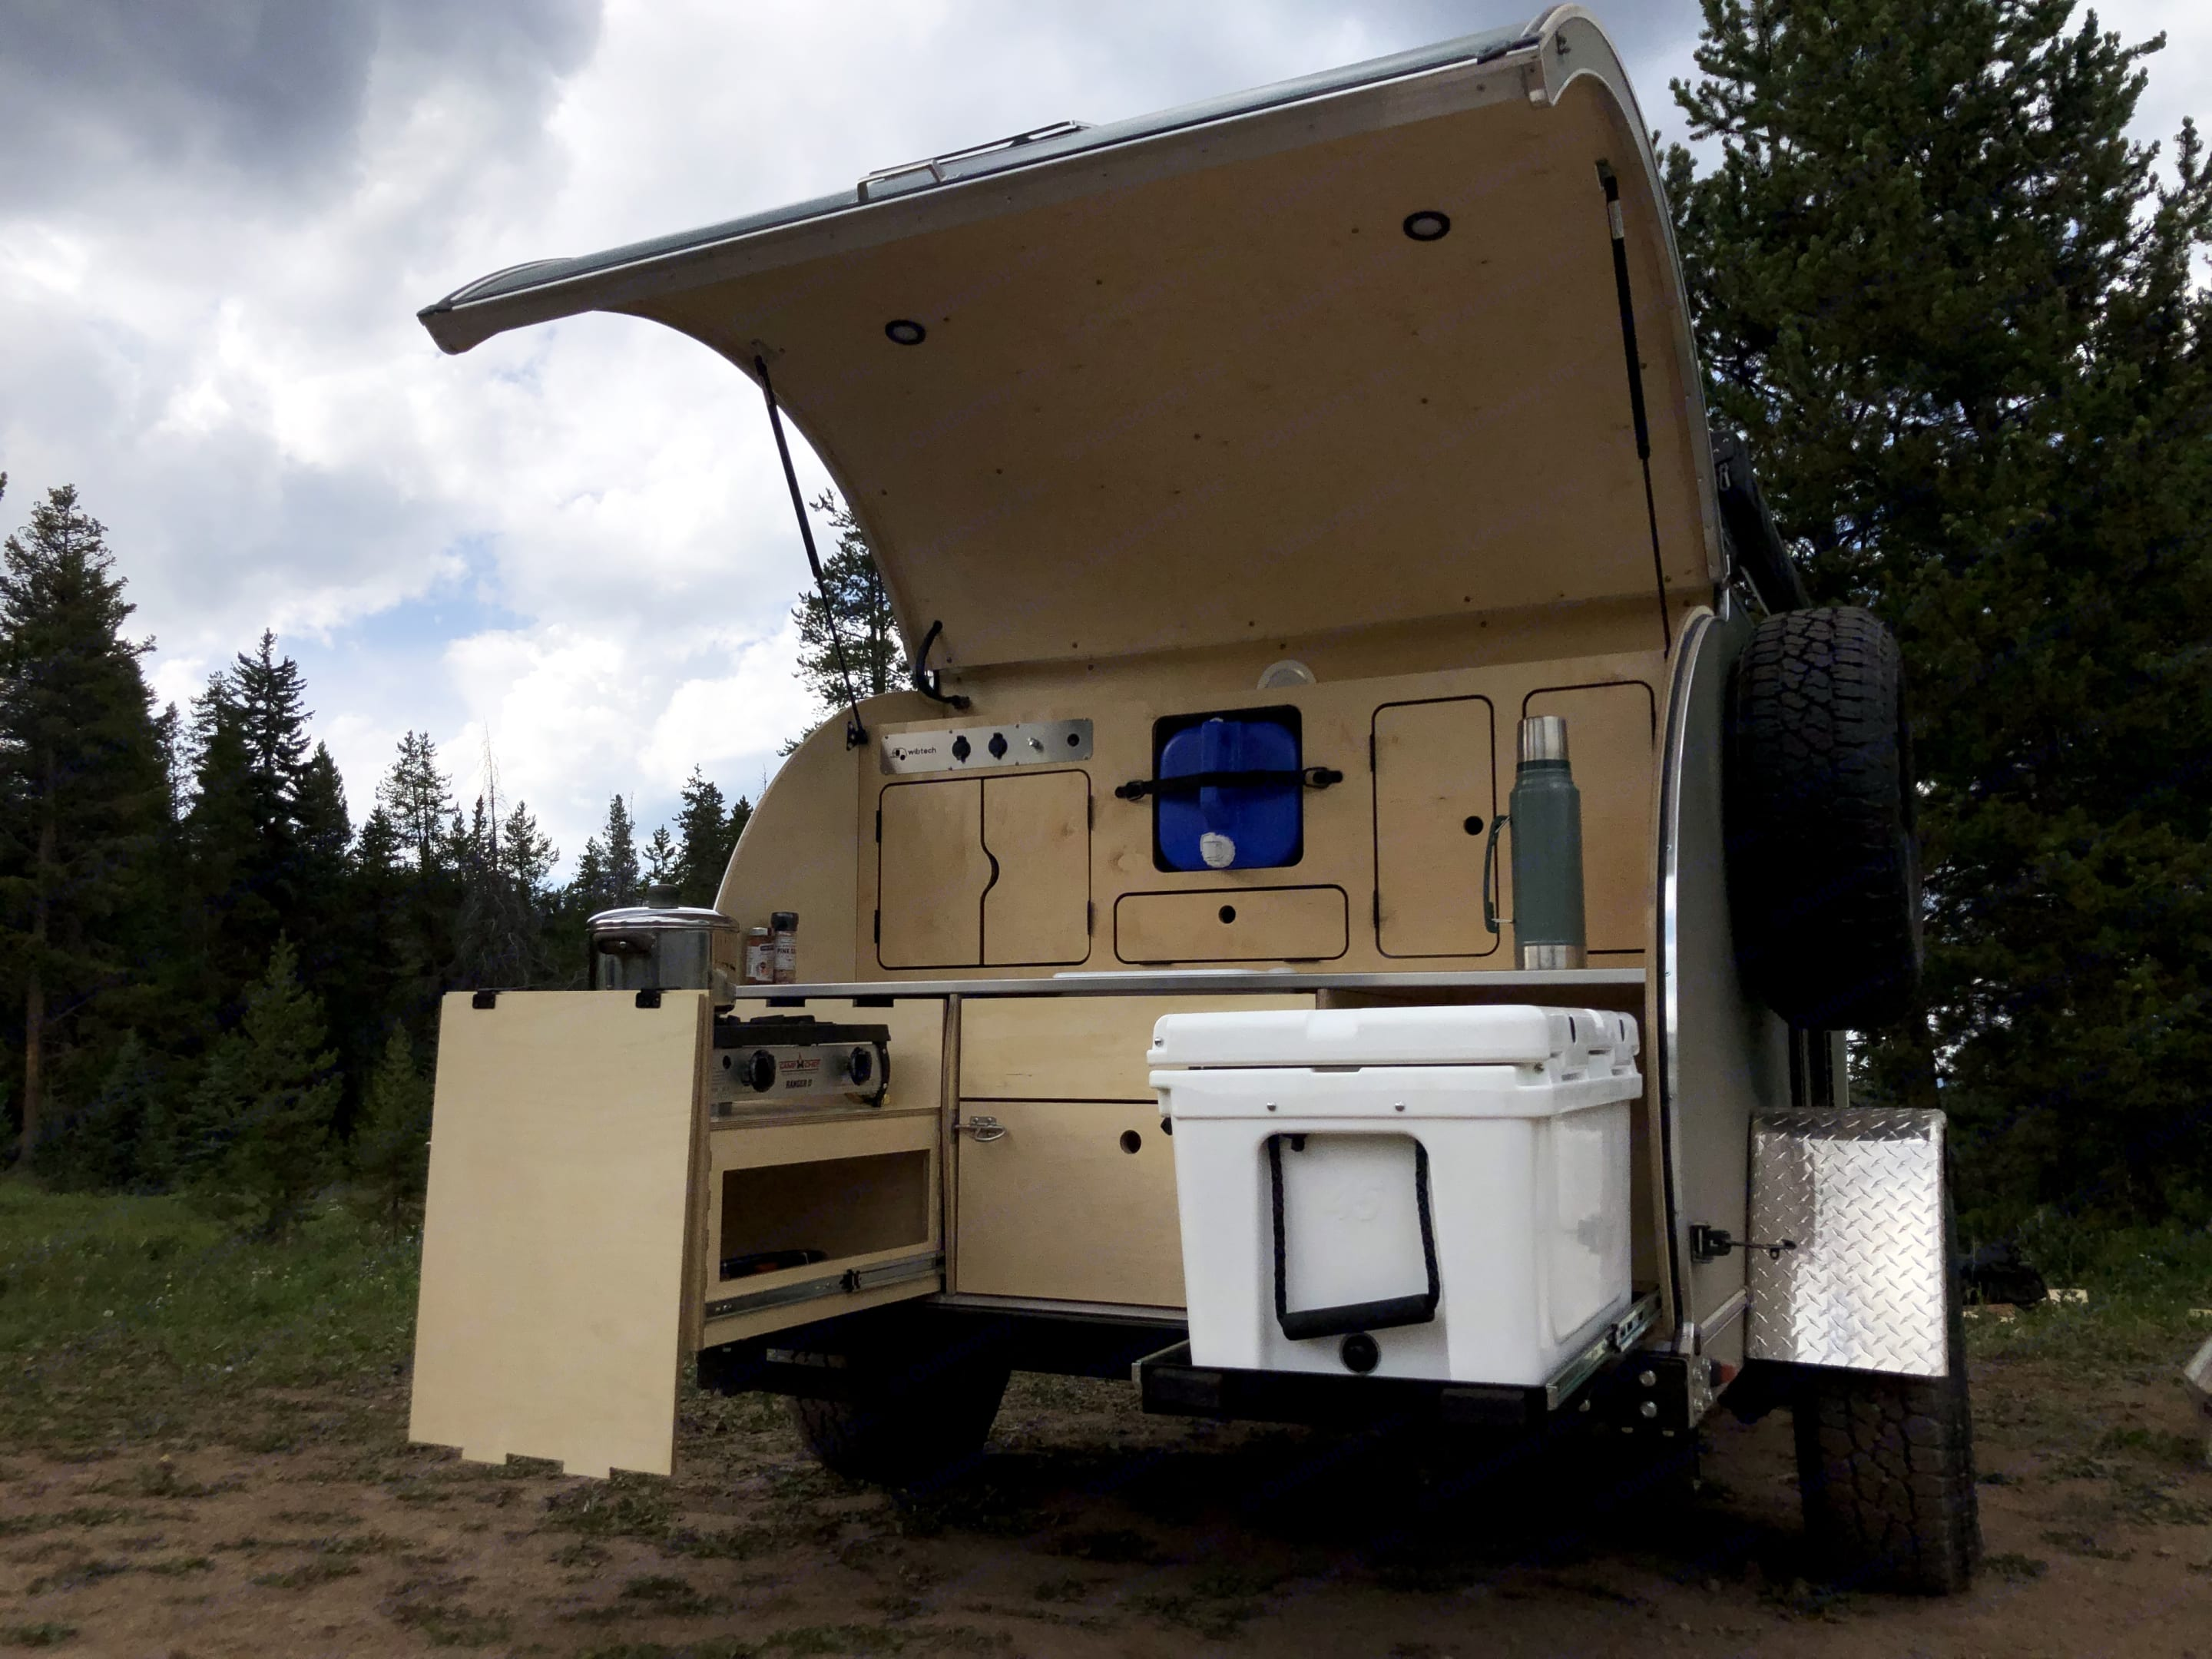 Once the hatch opens, you can see your Camp Chef stovetop ready to hook to the propane, great counter space, storage, and an awesome cooler ready to load up with your ingredients for cooking! . Wibtech Beta 2019